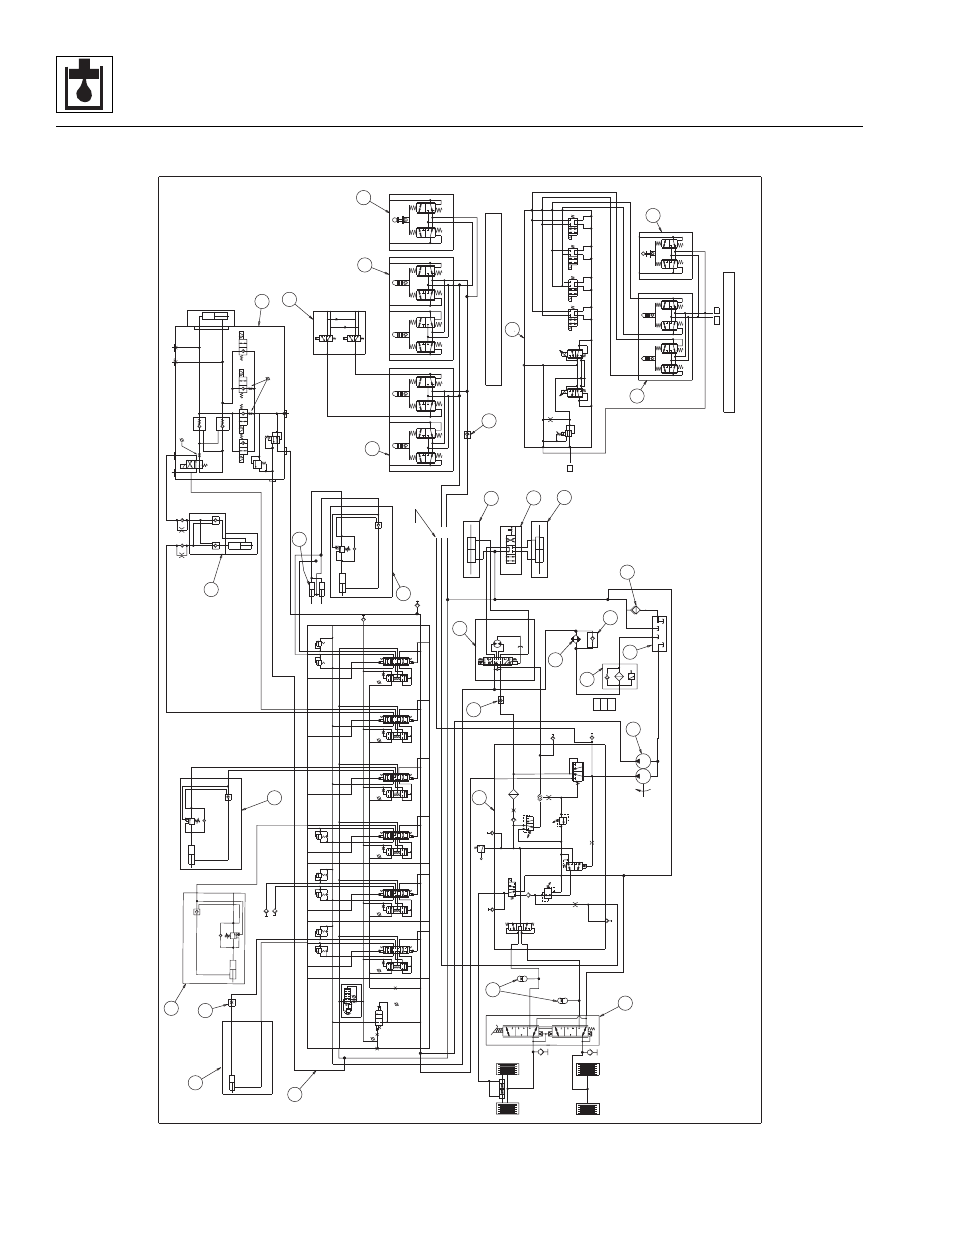 2 hydraulic schematic, 944e, Hydraulic schematic, 944e